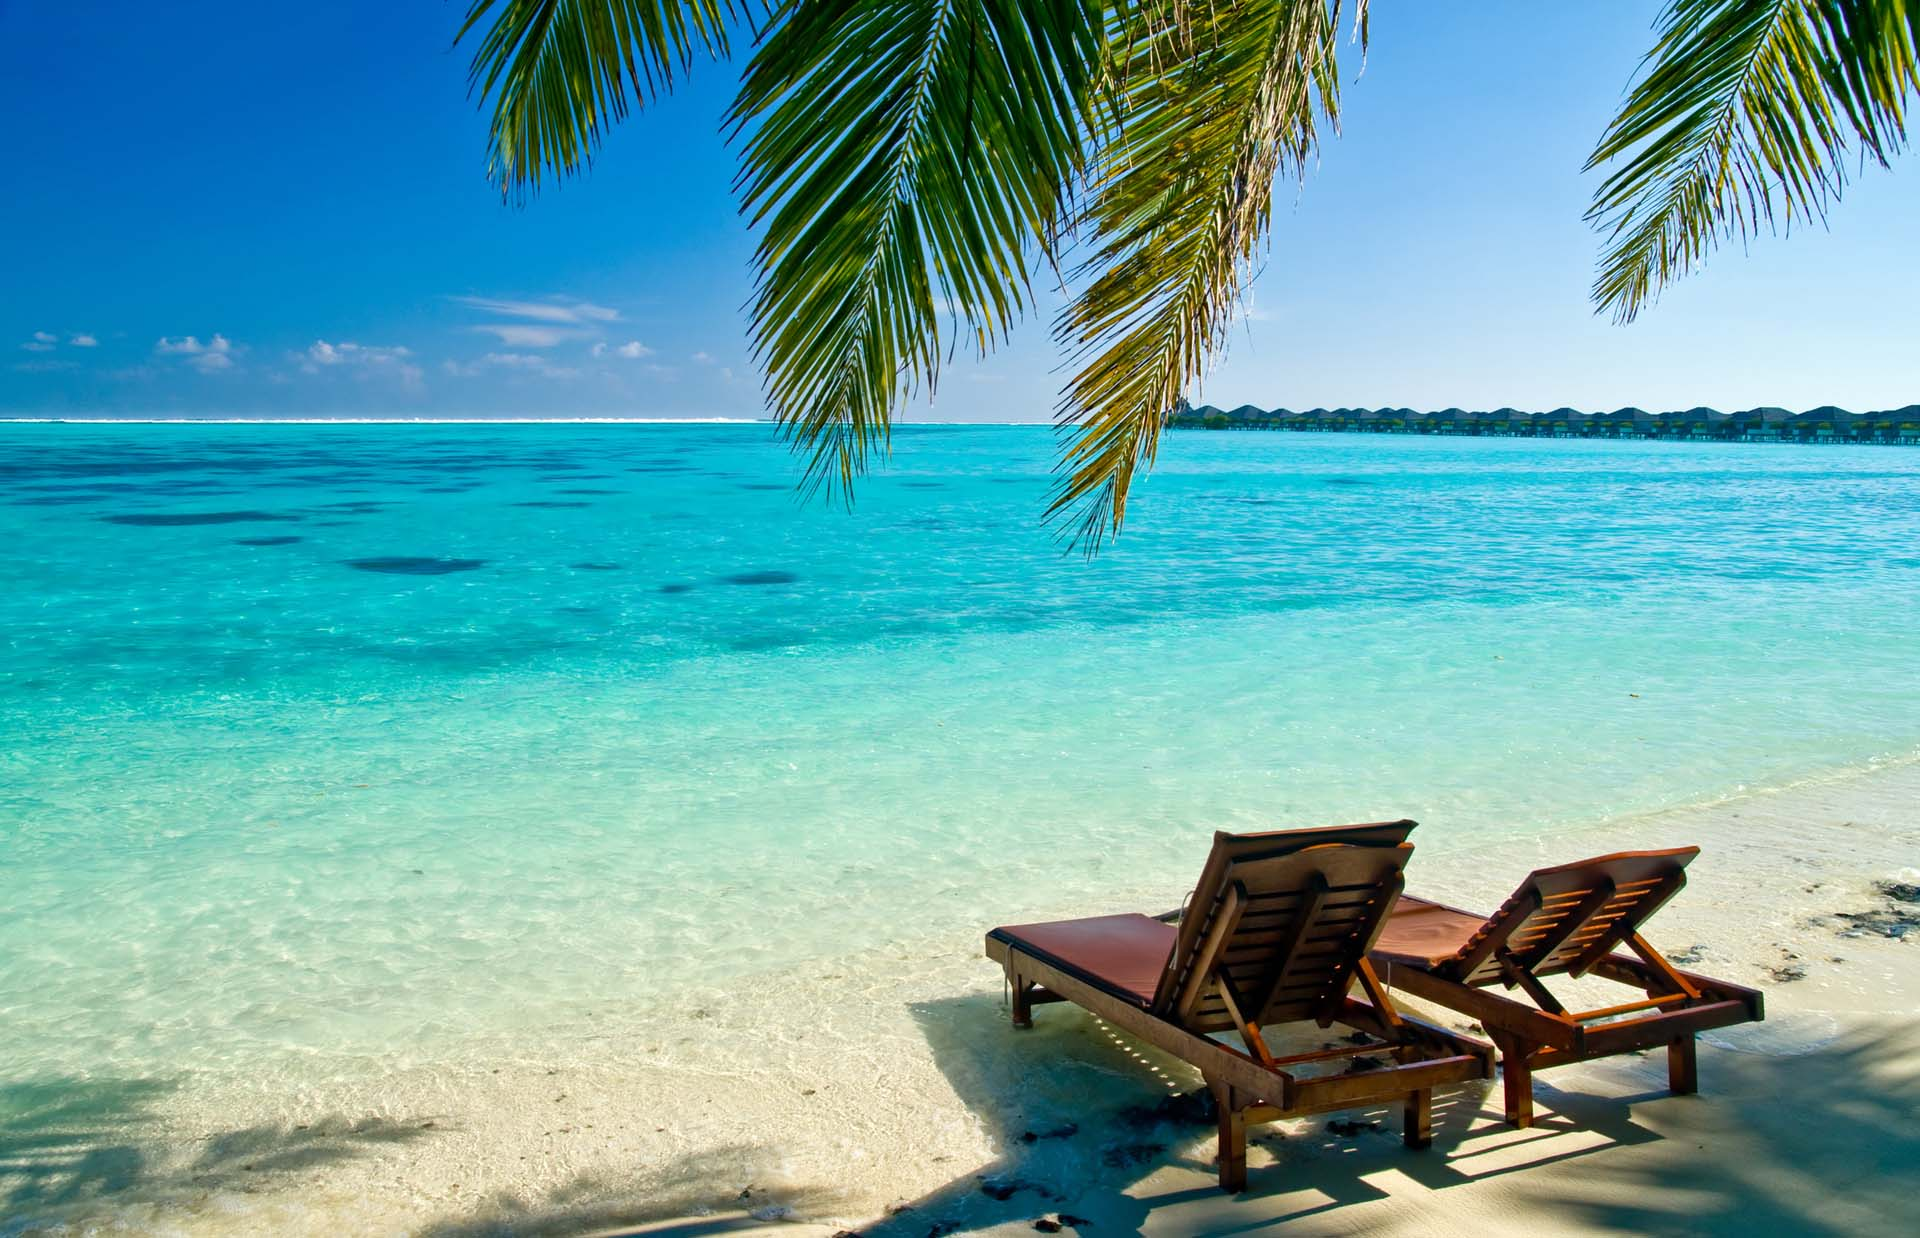 2 beach chairs on the beach - Summer Beach Desktop Wallpapers Daily Backgrounds In Hd